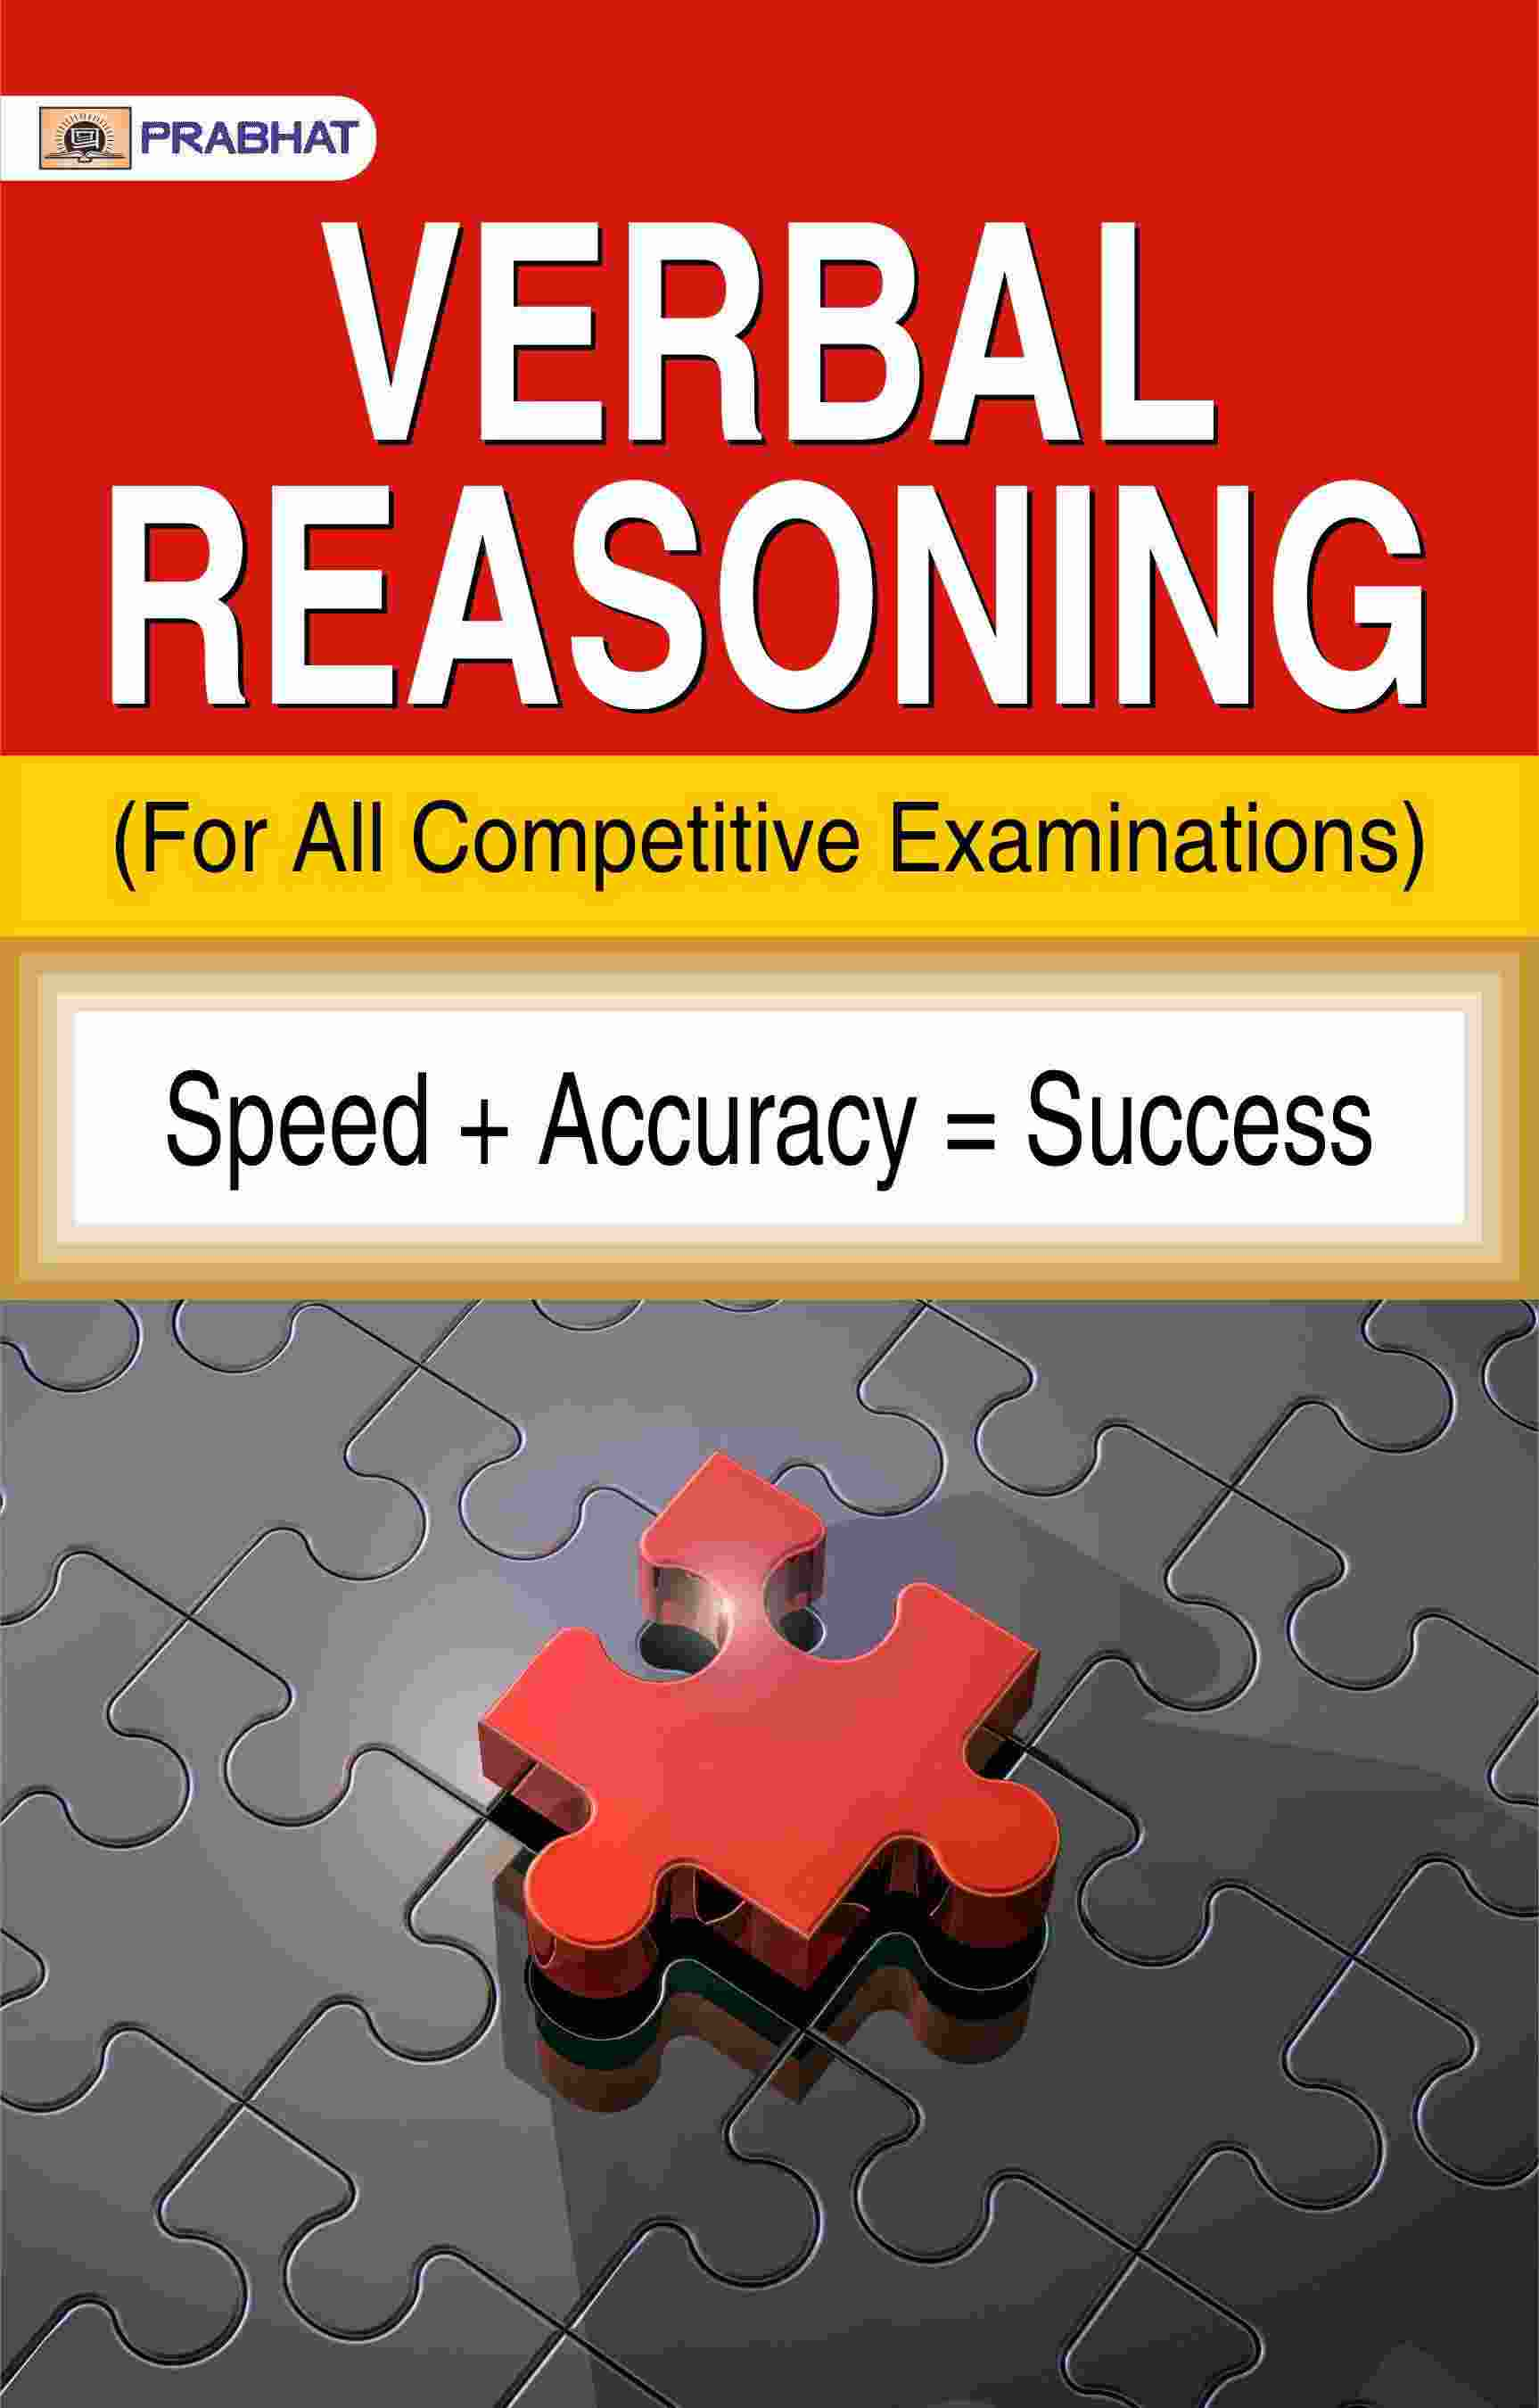 Verbal Reasoning (For all Competitive Examinations)